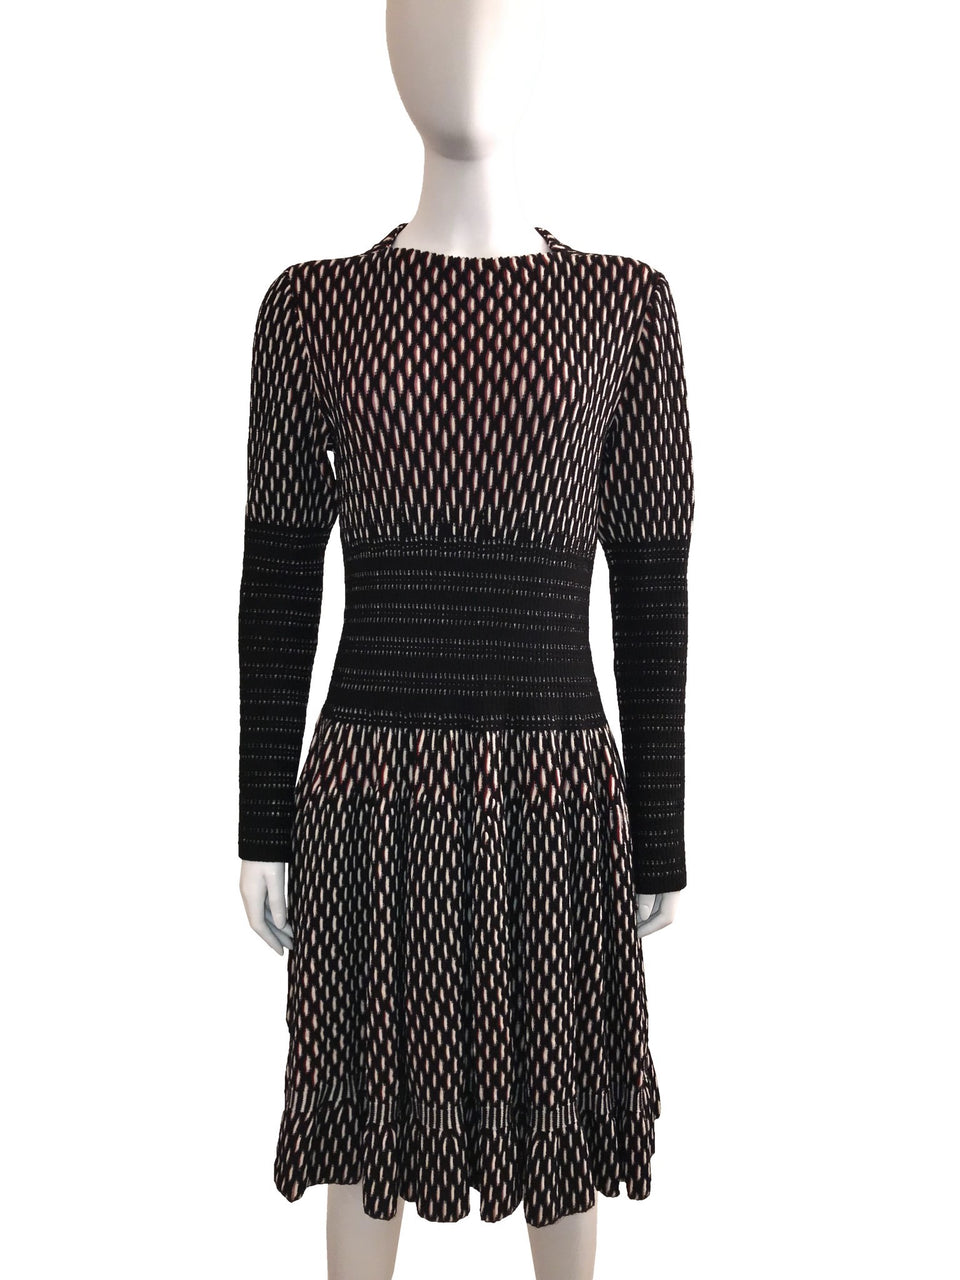 Knit Dress w/ Arm and Waist Band Detail